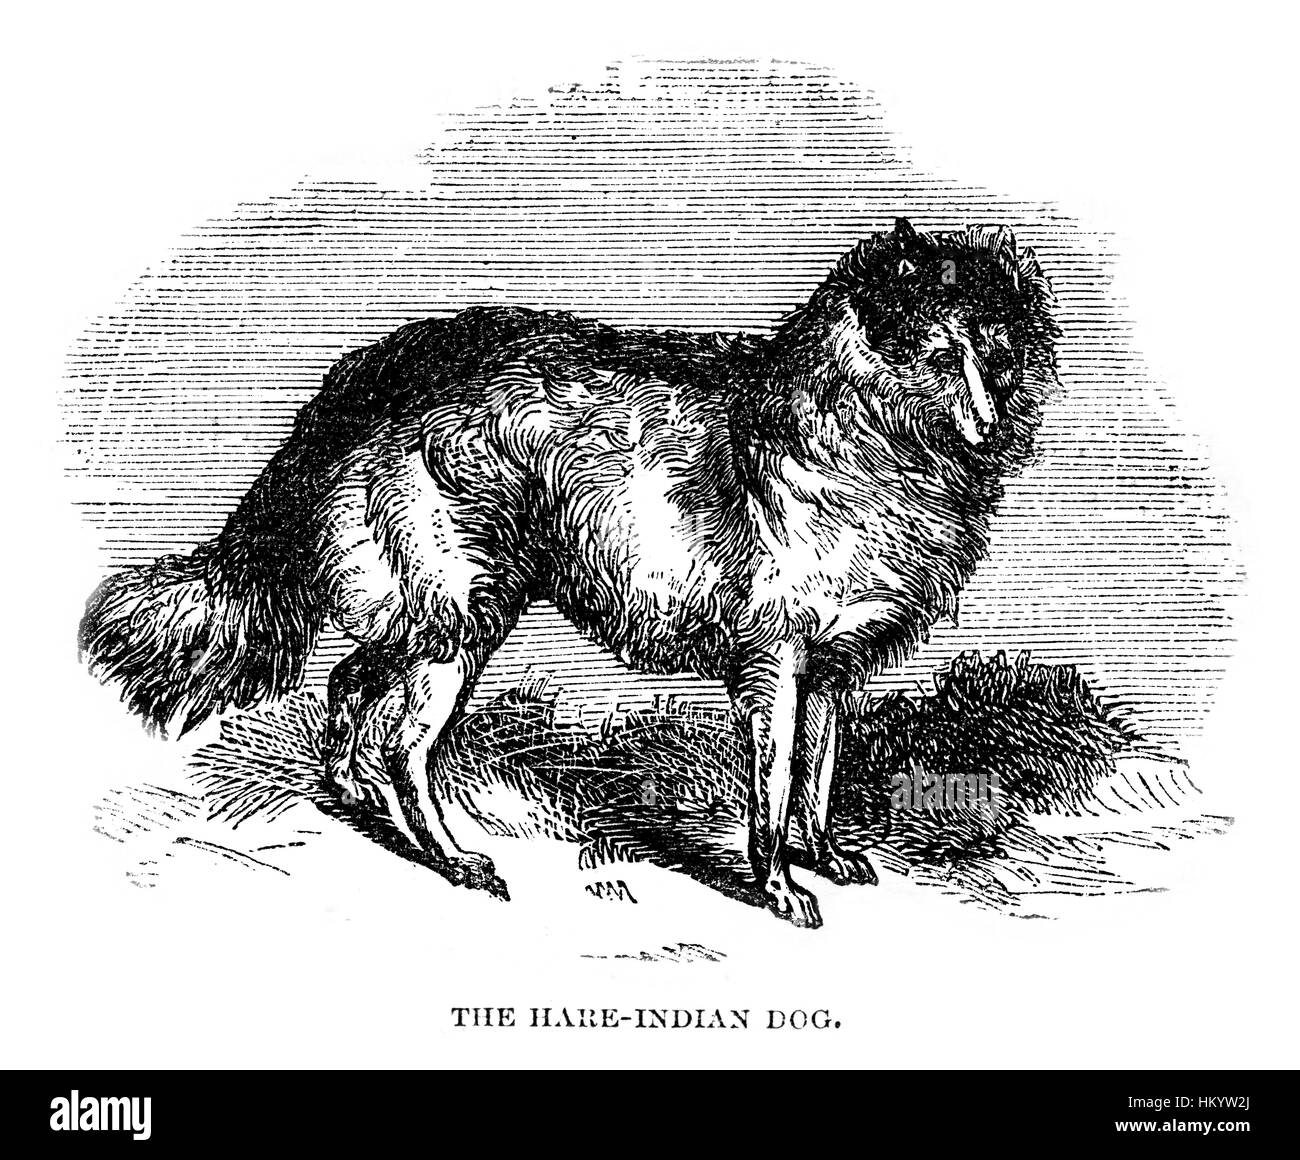 Hare-Indian Dog. 19th century Engraving from 'Popular Natural History' published in 1866. - Stock Image